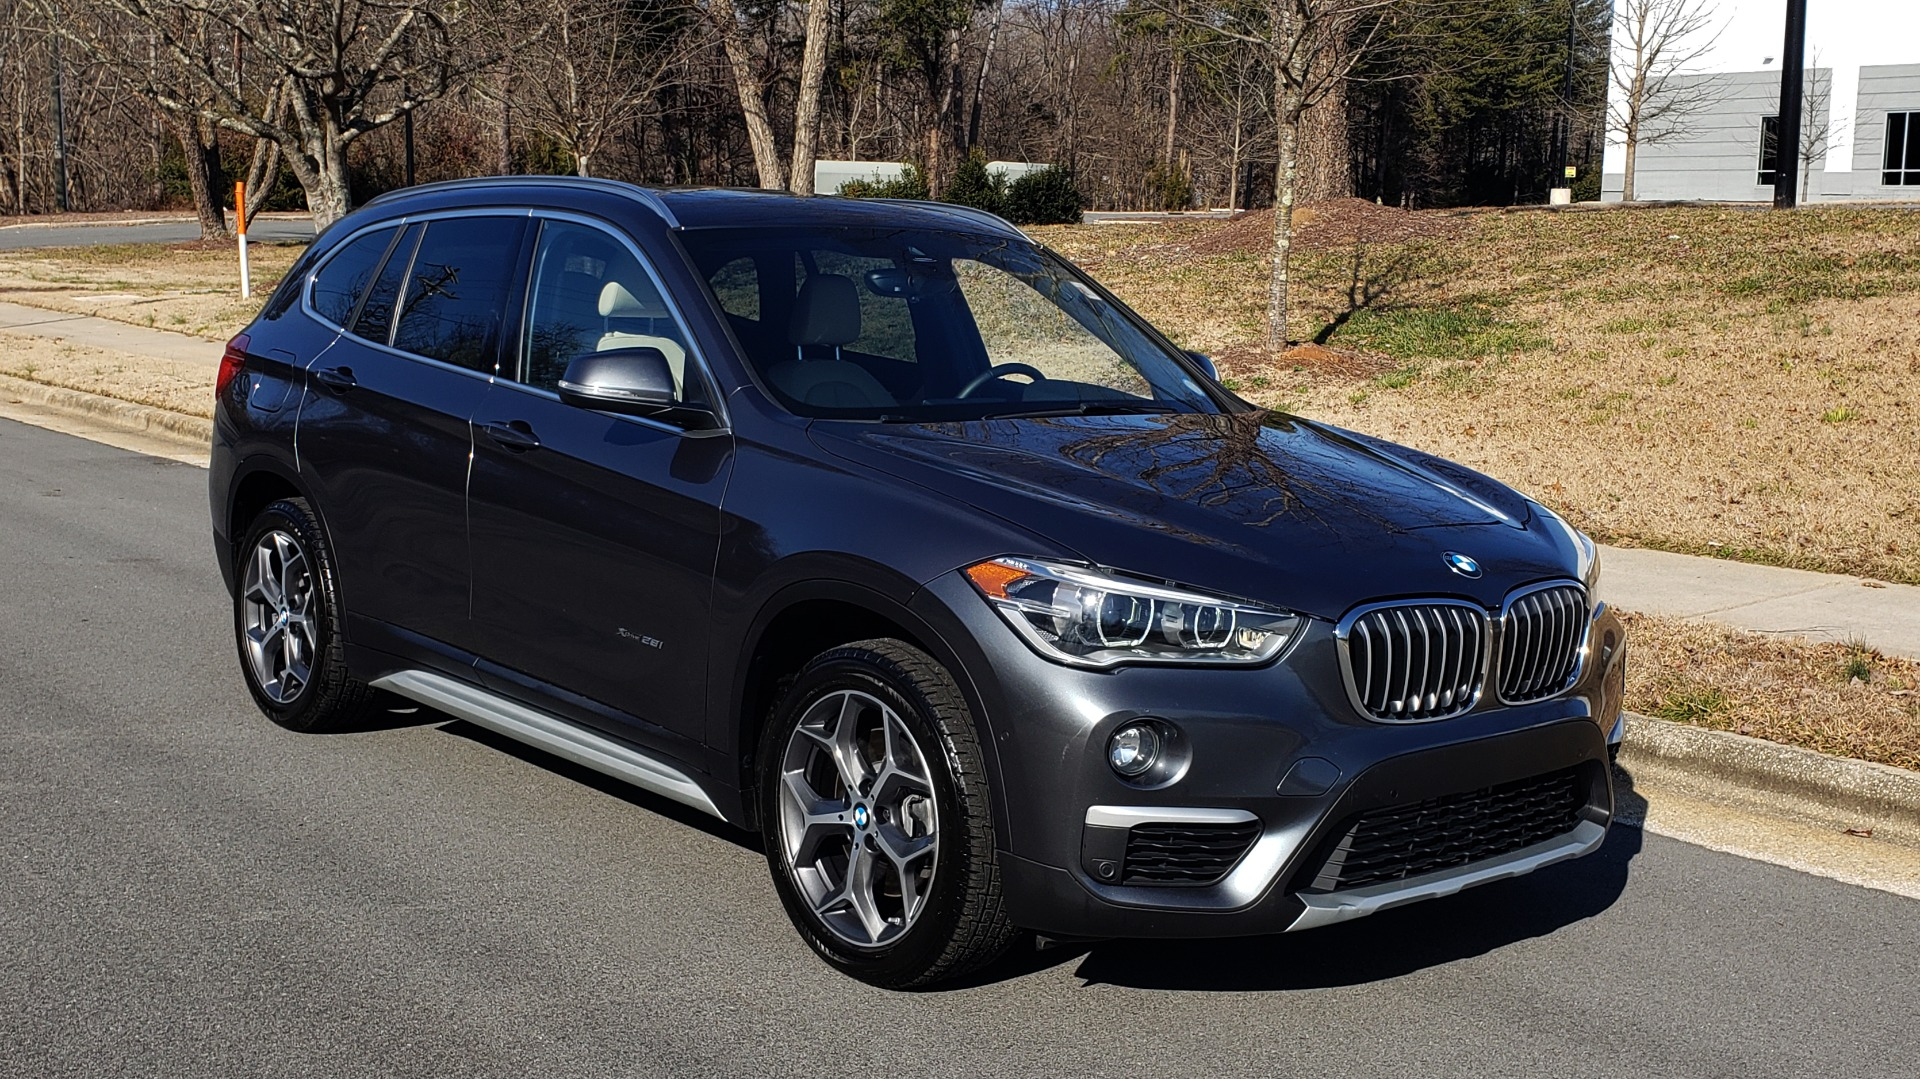 Used 2017 BMW X1 XDRIVE28I / PREM / TECH / DRVR ASST PLUS / COLD WTHR / REARVIEW for sale $26,995 at Formula Imports in Charlotte NC 28227 4